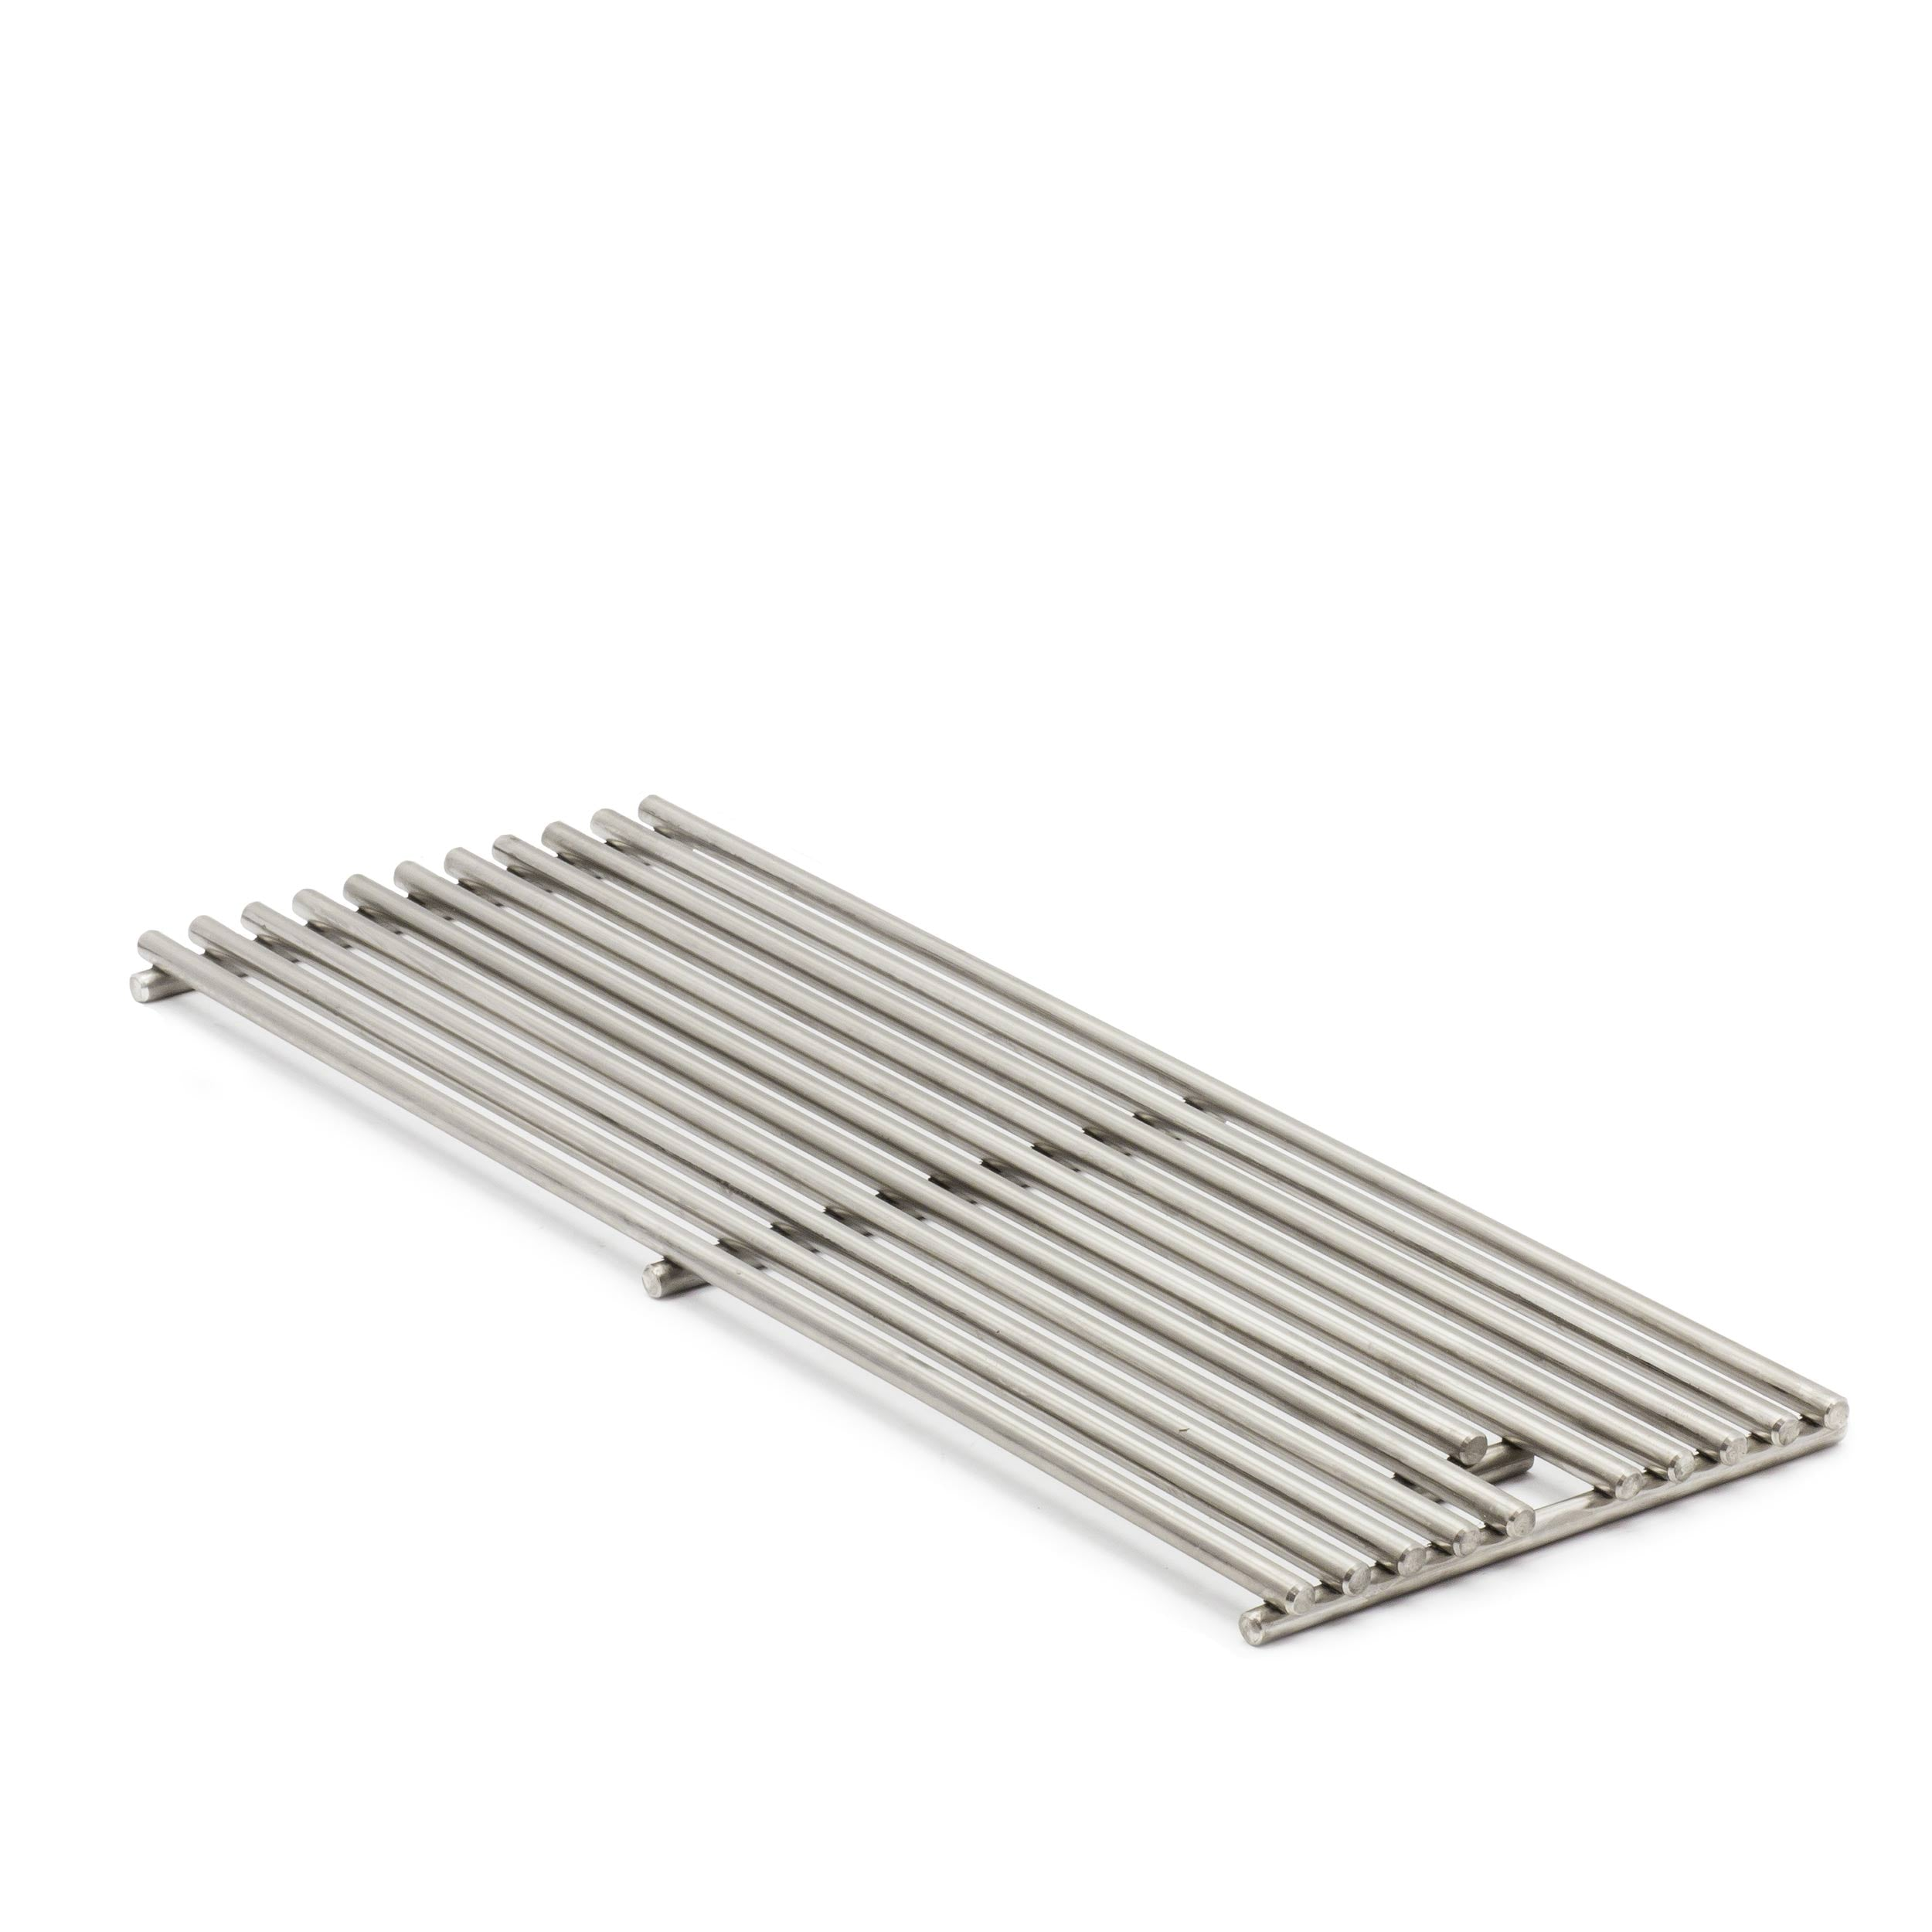 "Summerset TRLD 32"" 44"" Grate Large (7 1/4"" x 20"") - BBQ Fix"